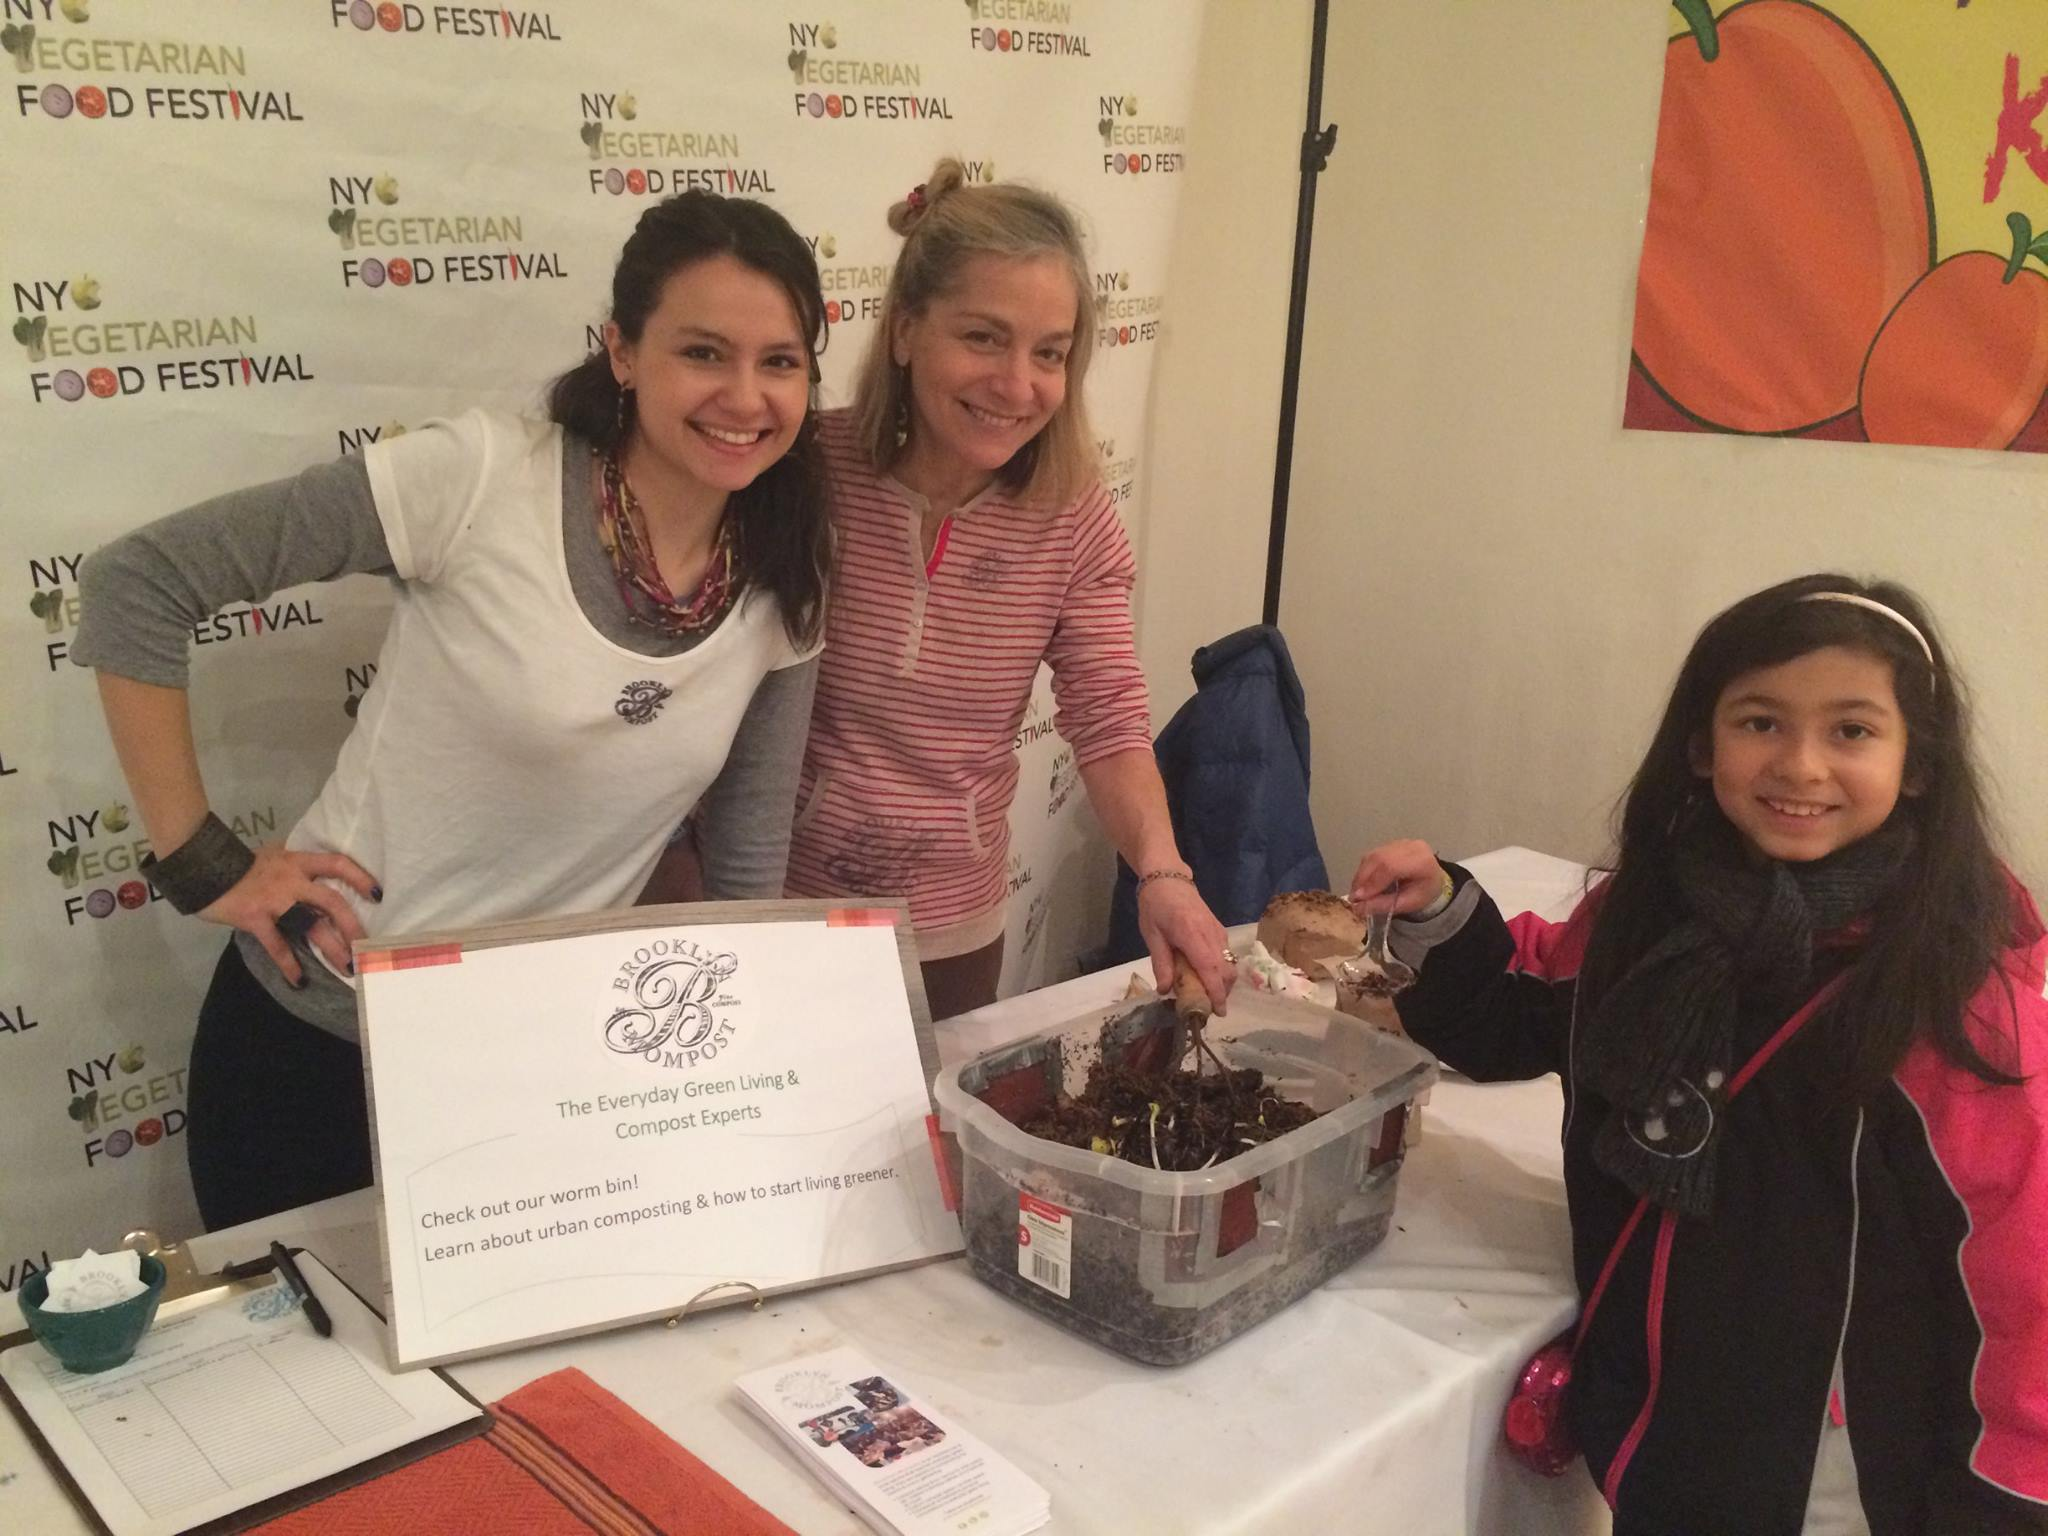 NYC Vegetarian Food Festival 2015